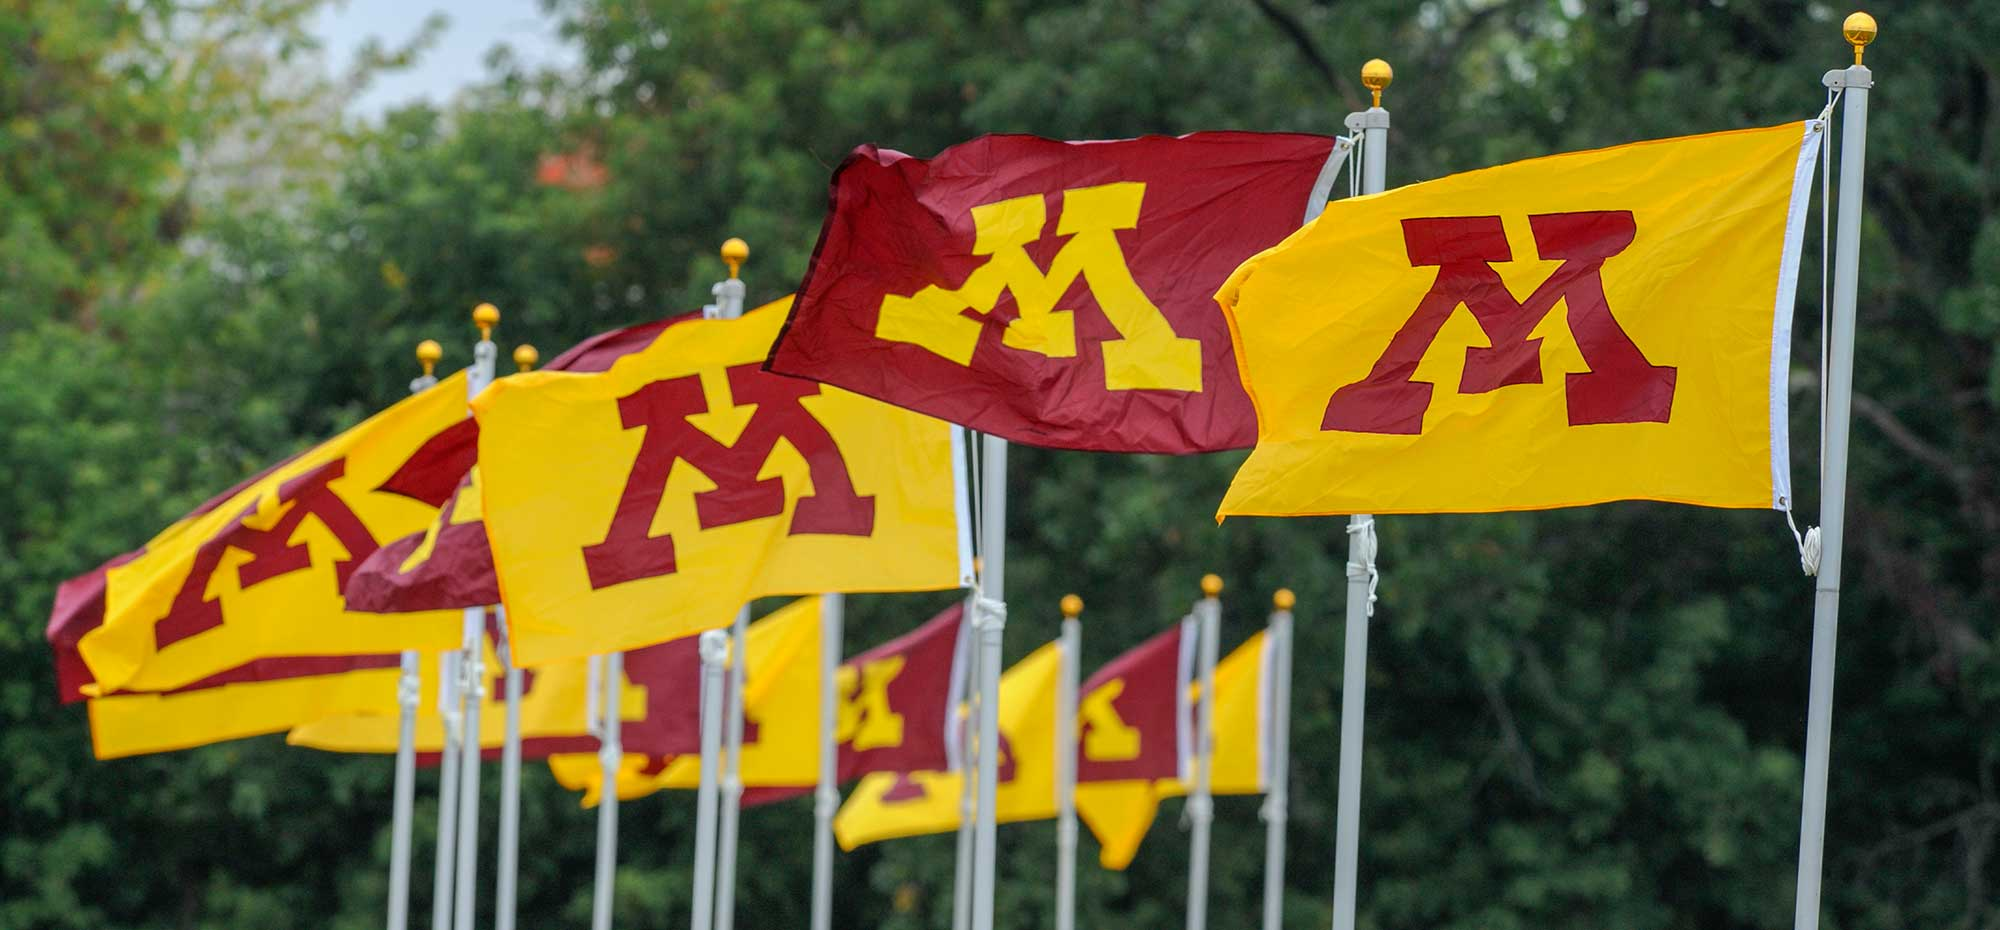 A group of gold and maroon flags with the Minnesota M on them.